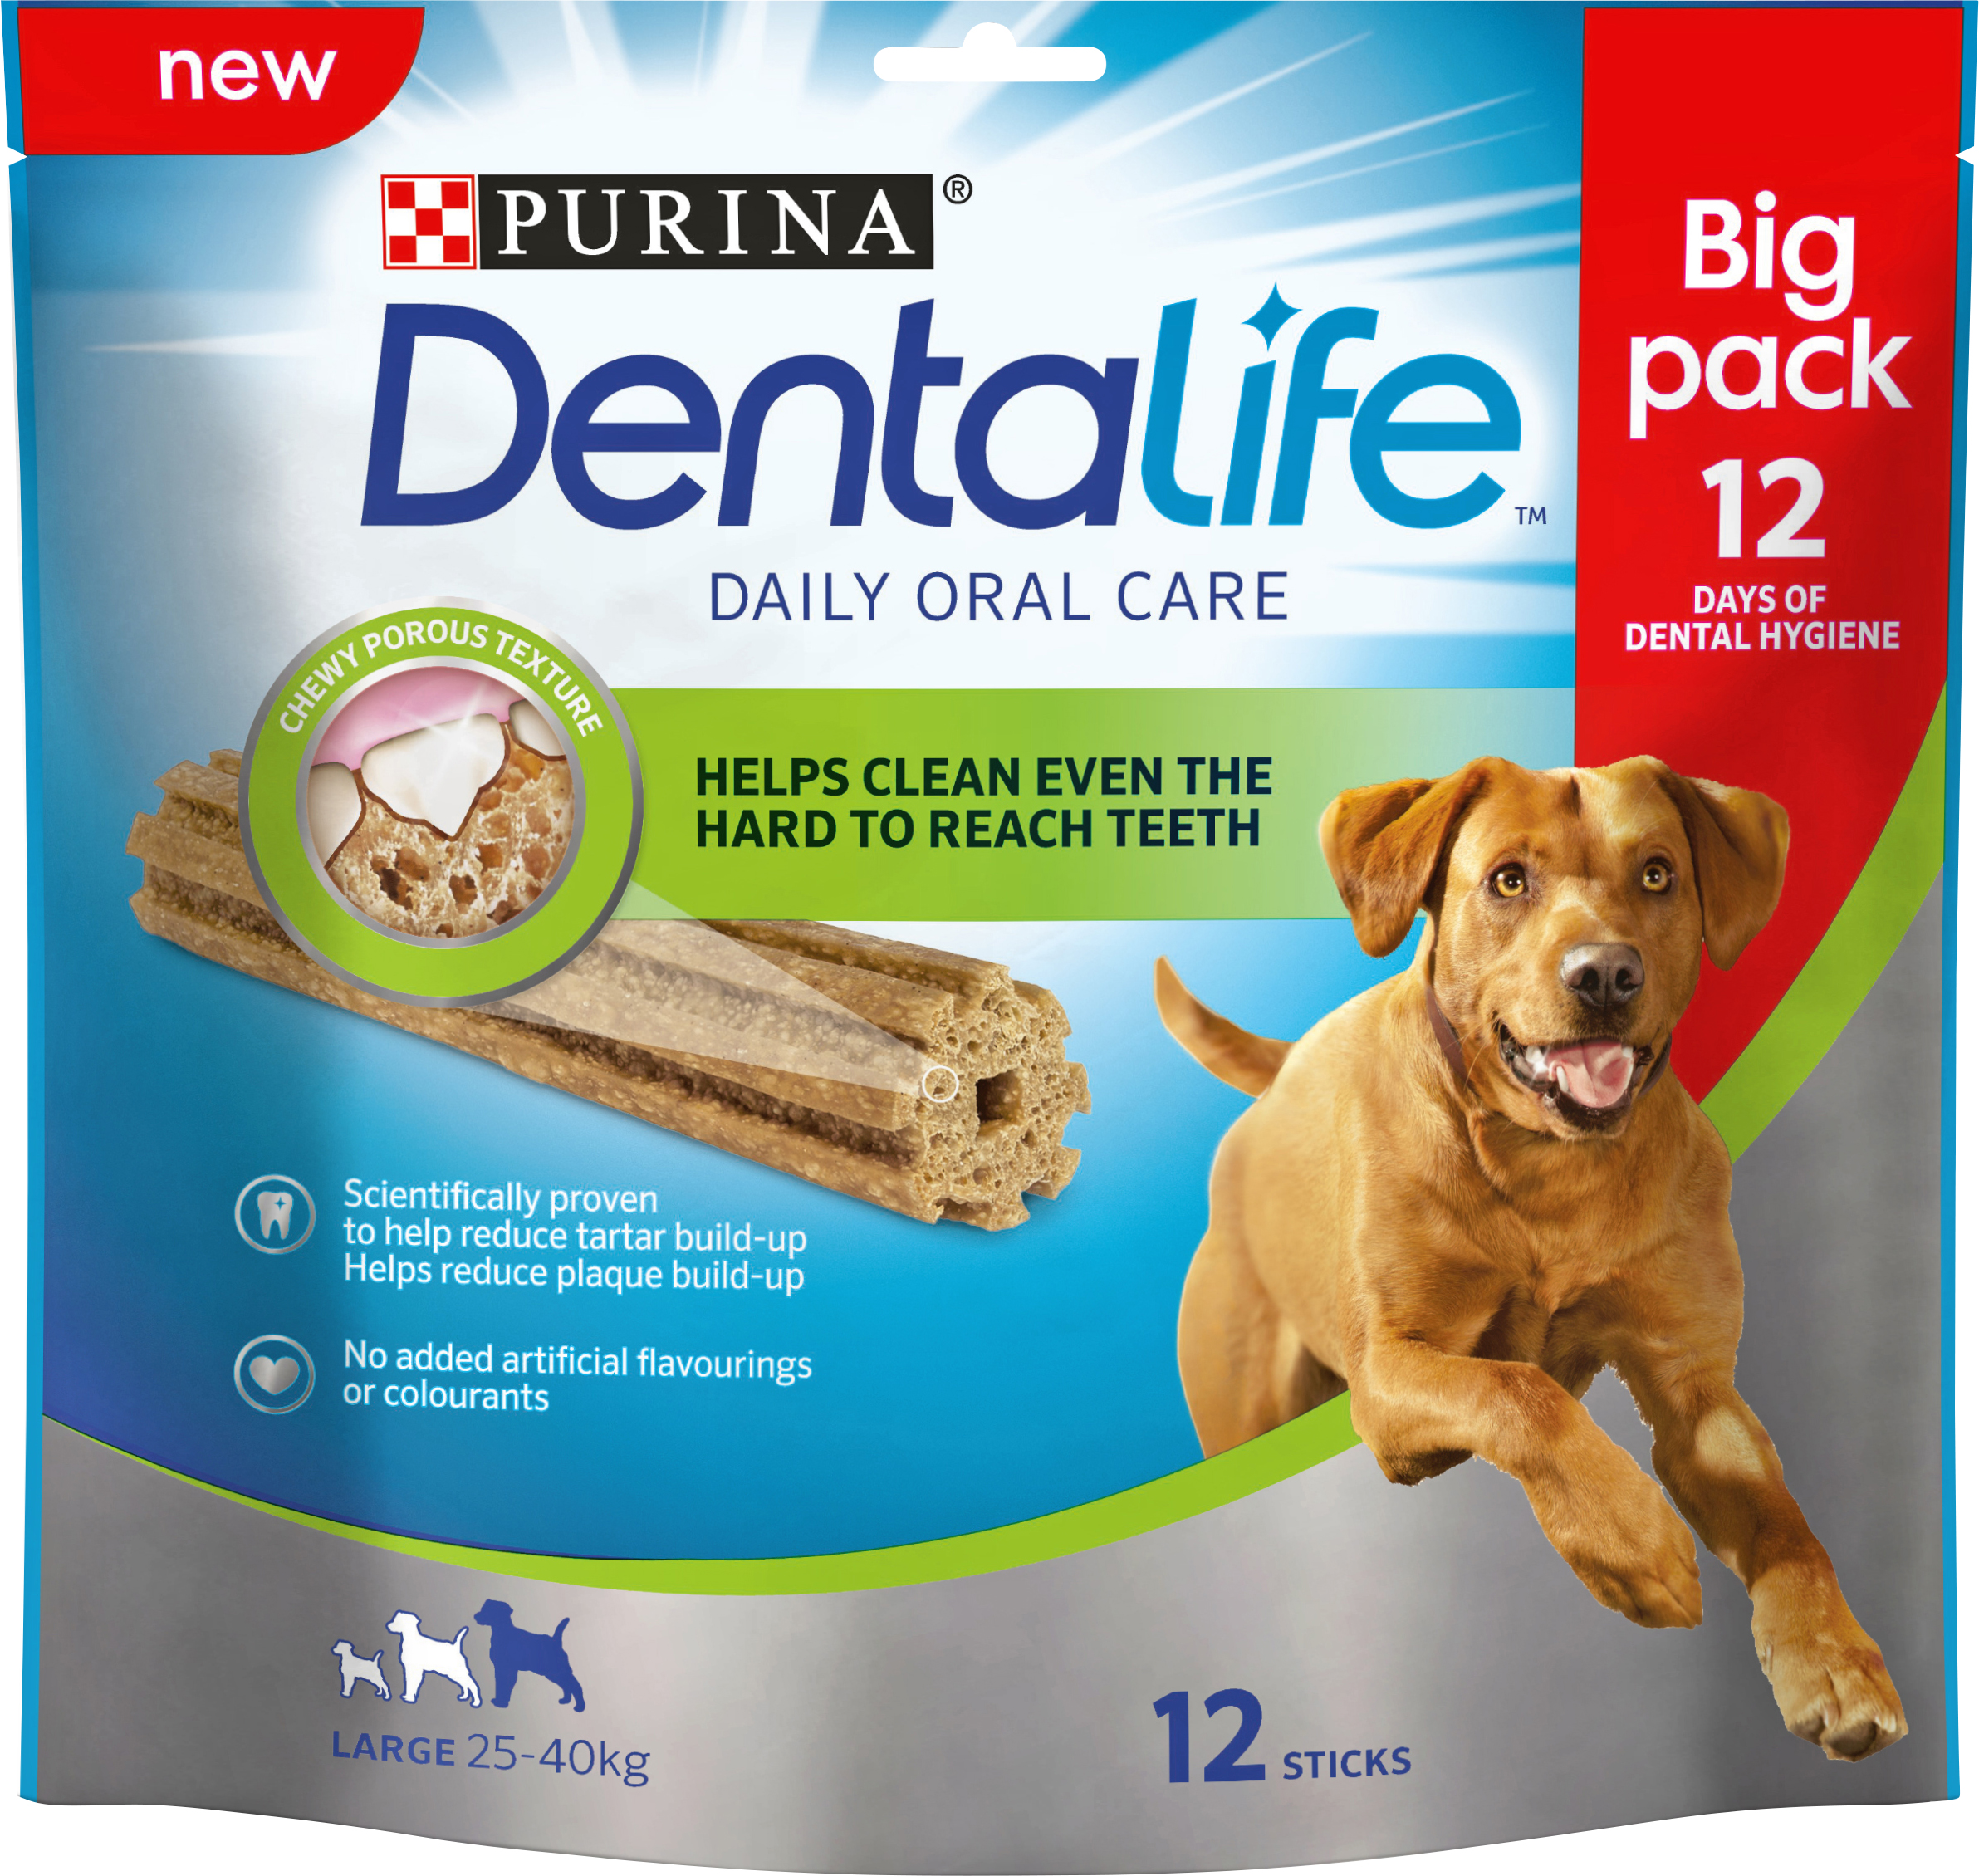 Hundtugg Purina DentaLife Large, 12-pack